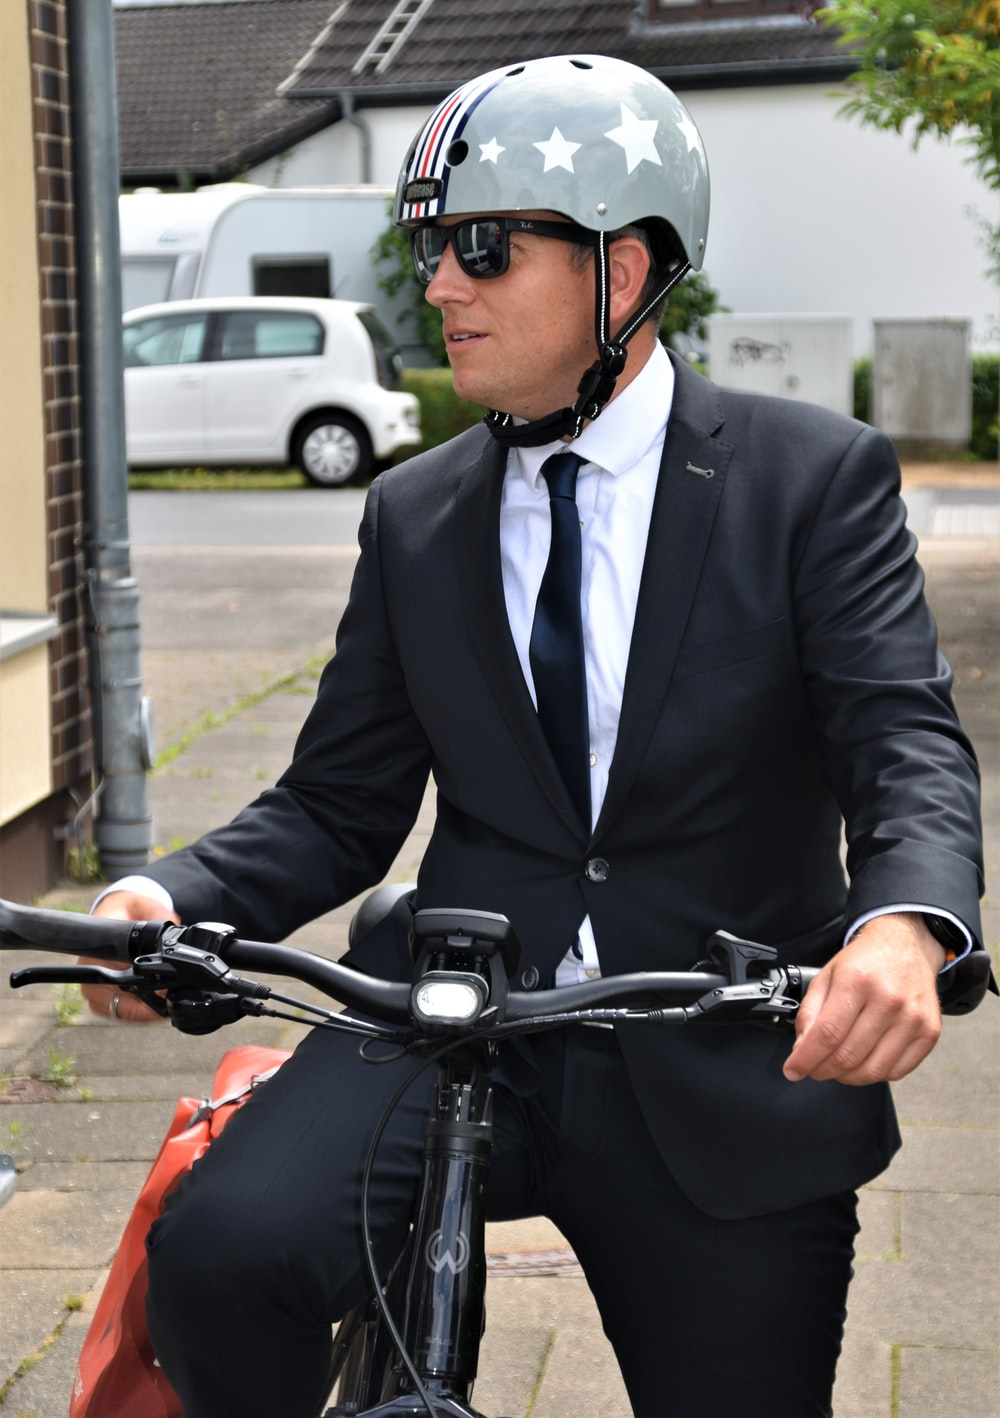 man in black suit riding on motorcycle